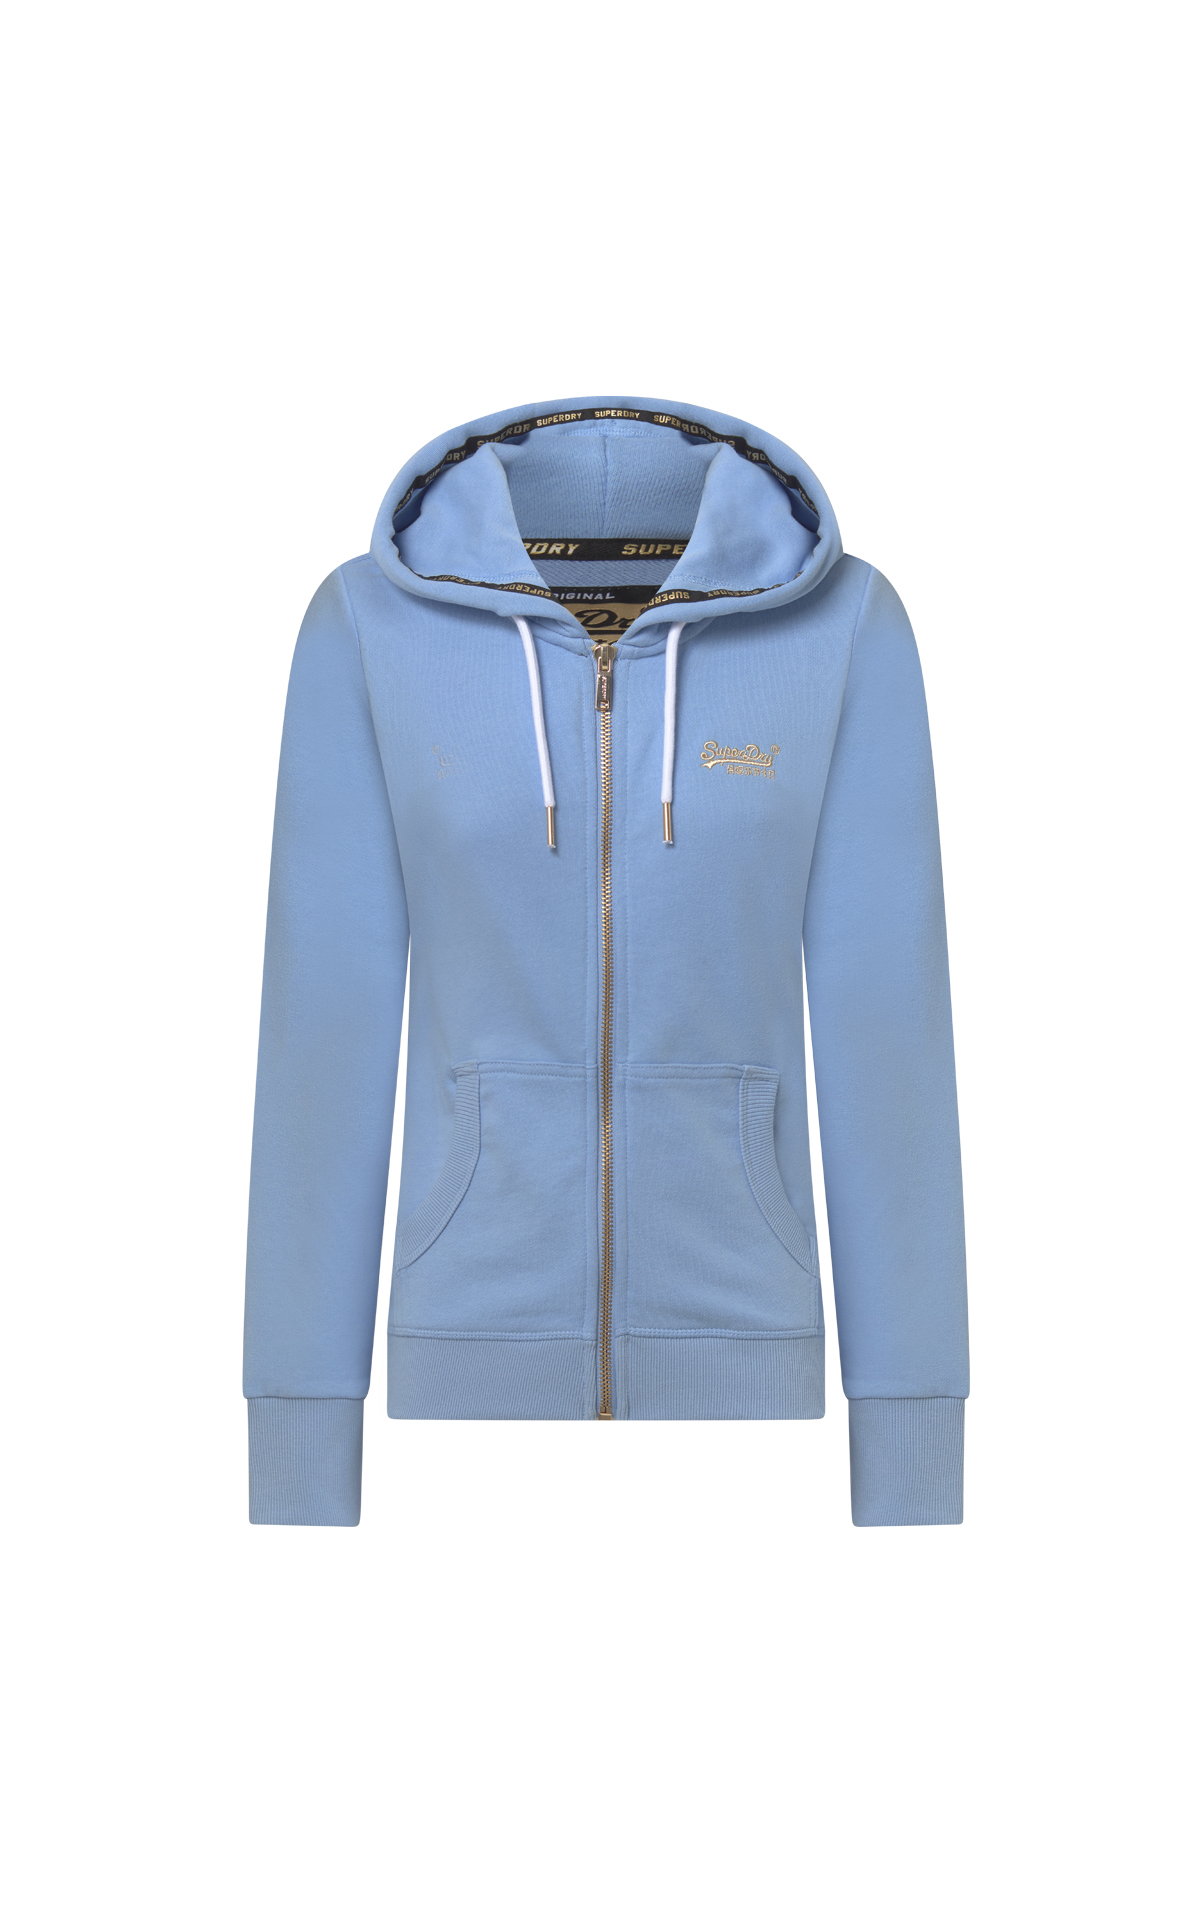 Light blue sweatshirt woman Superdry